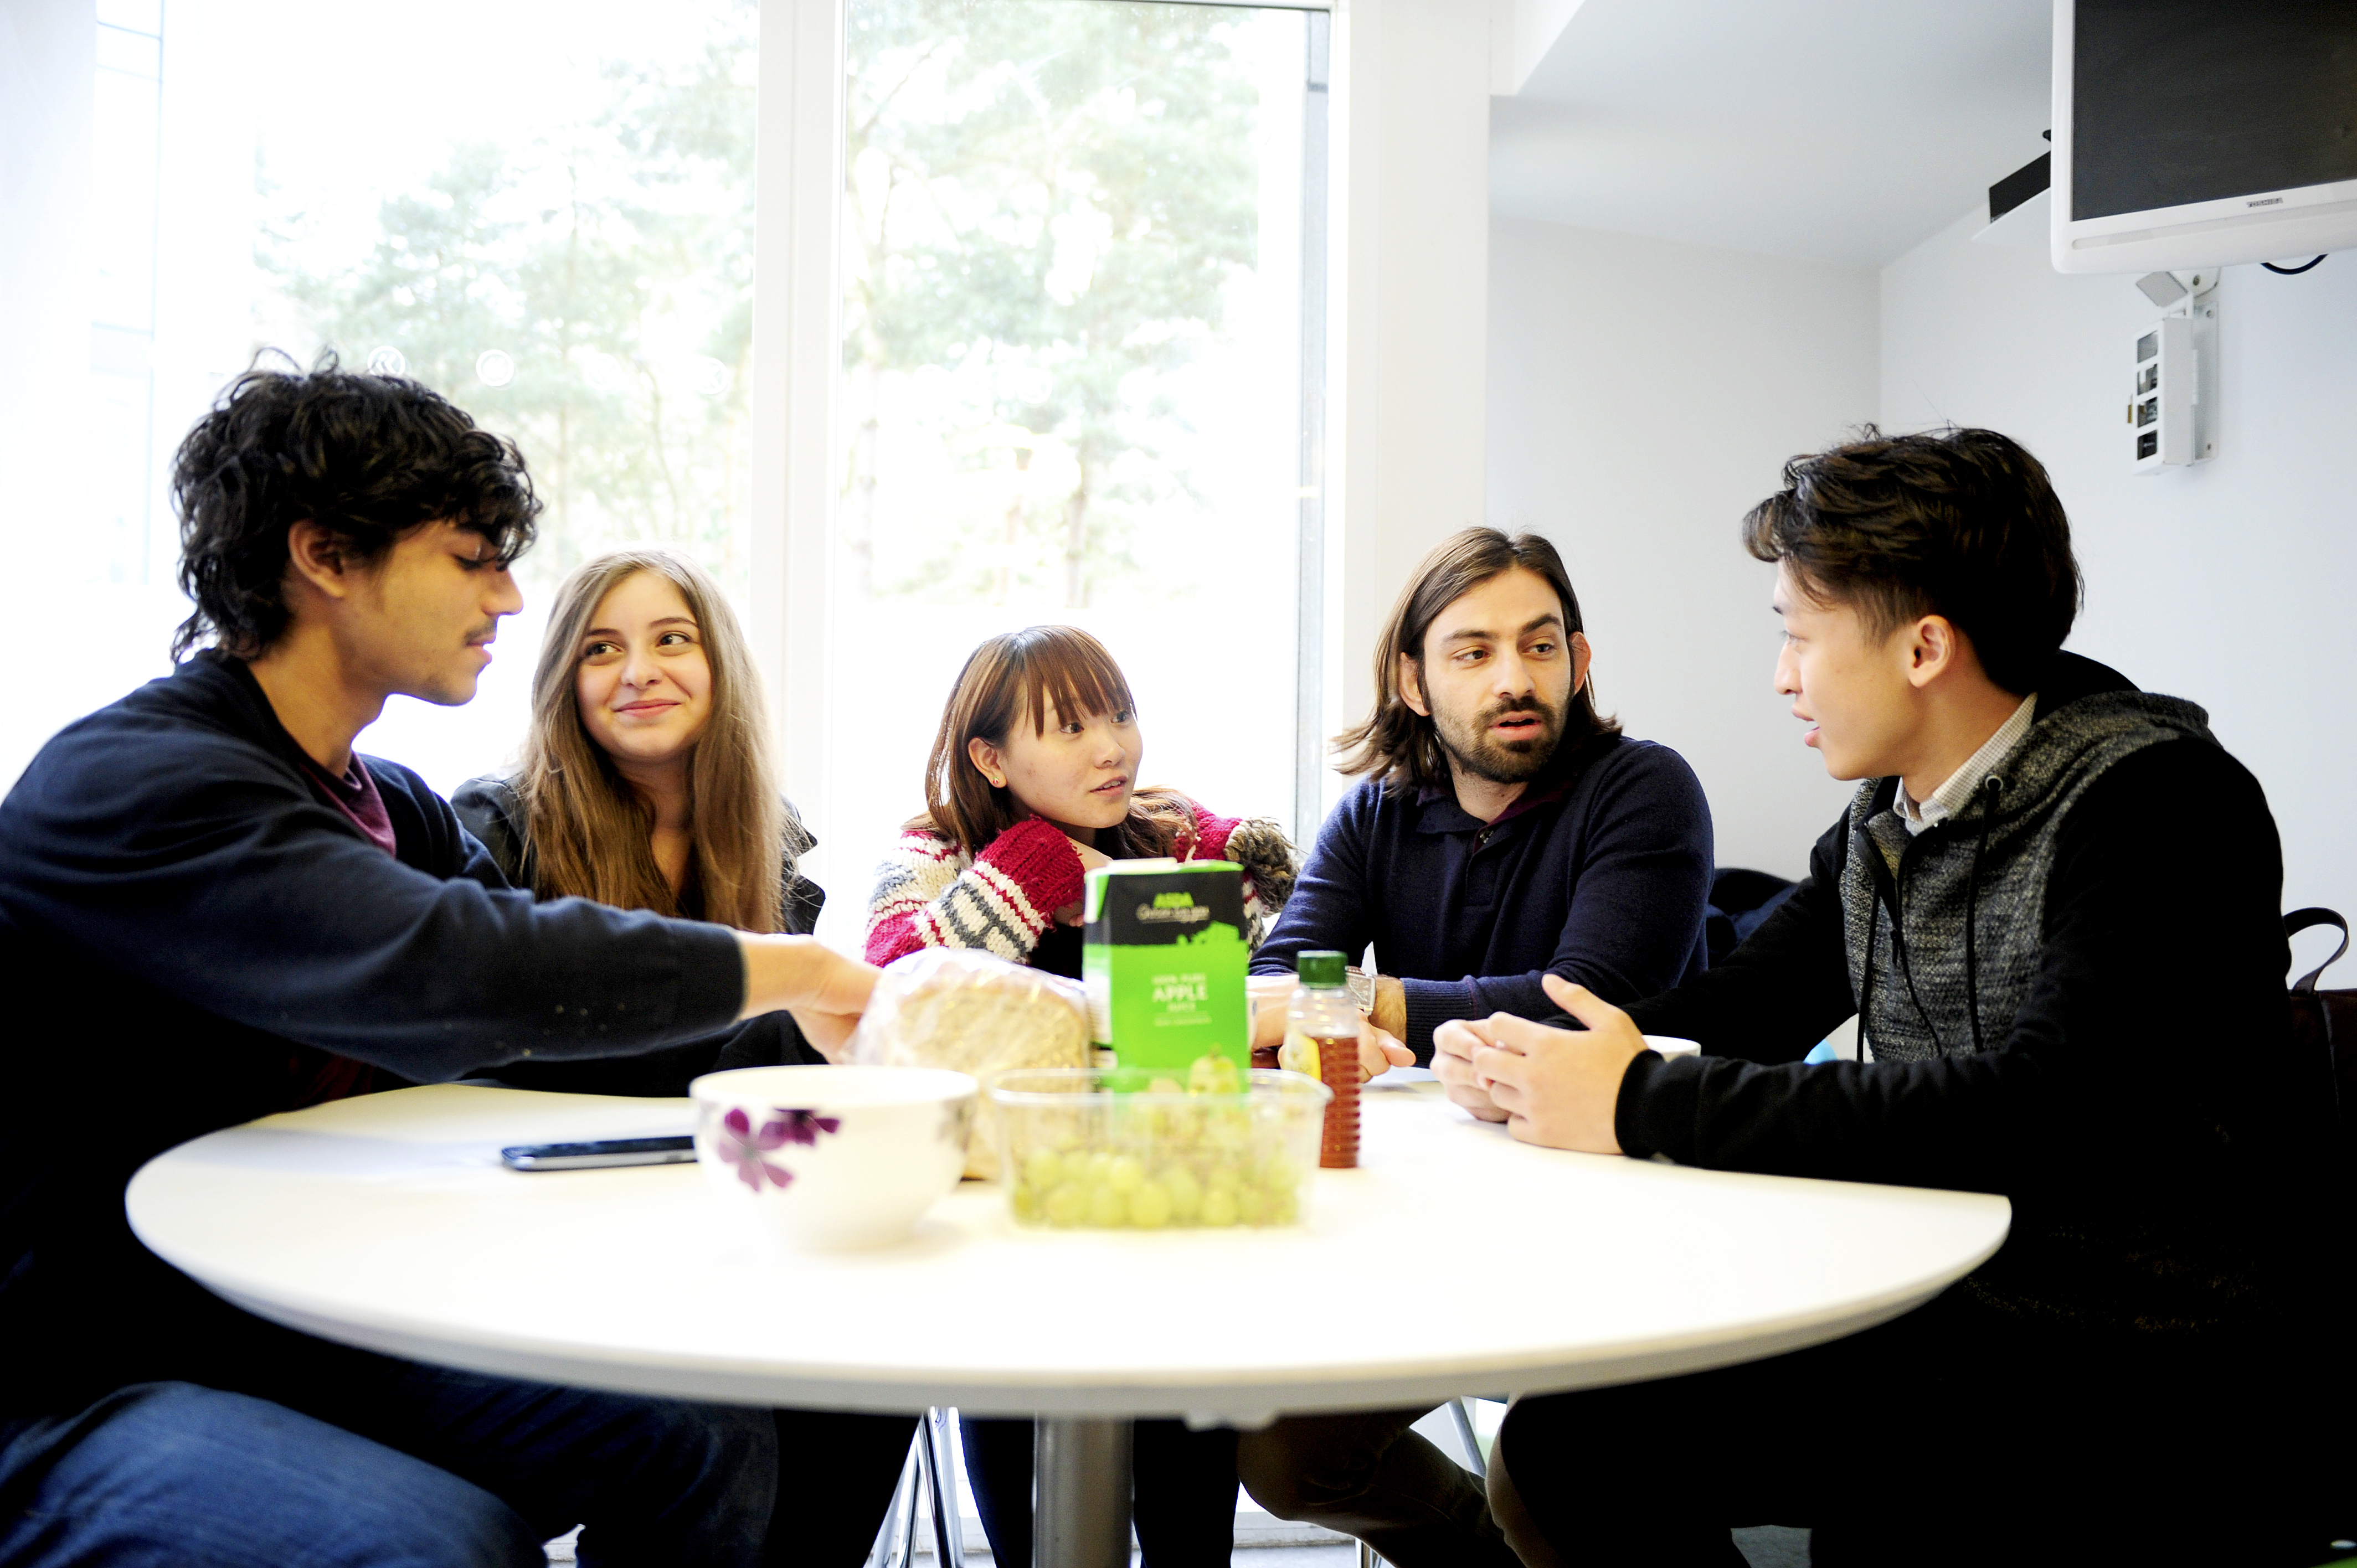 Students socialising in the kitchen at INTO UEA student accommodation